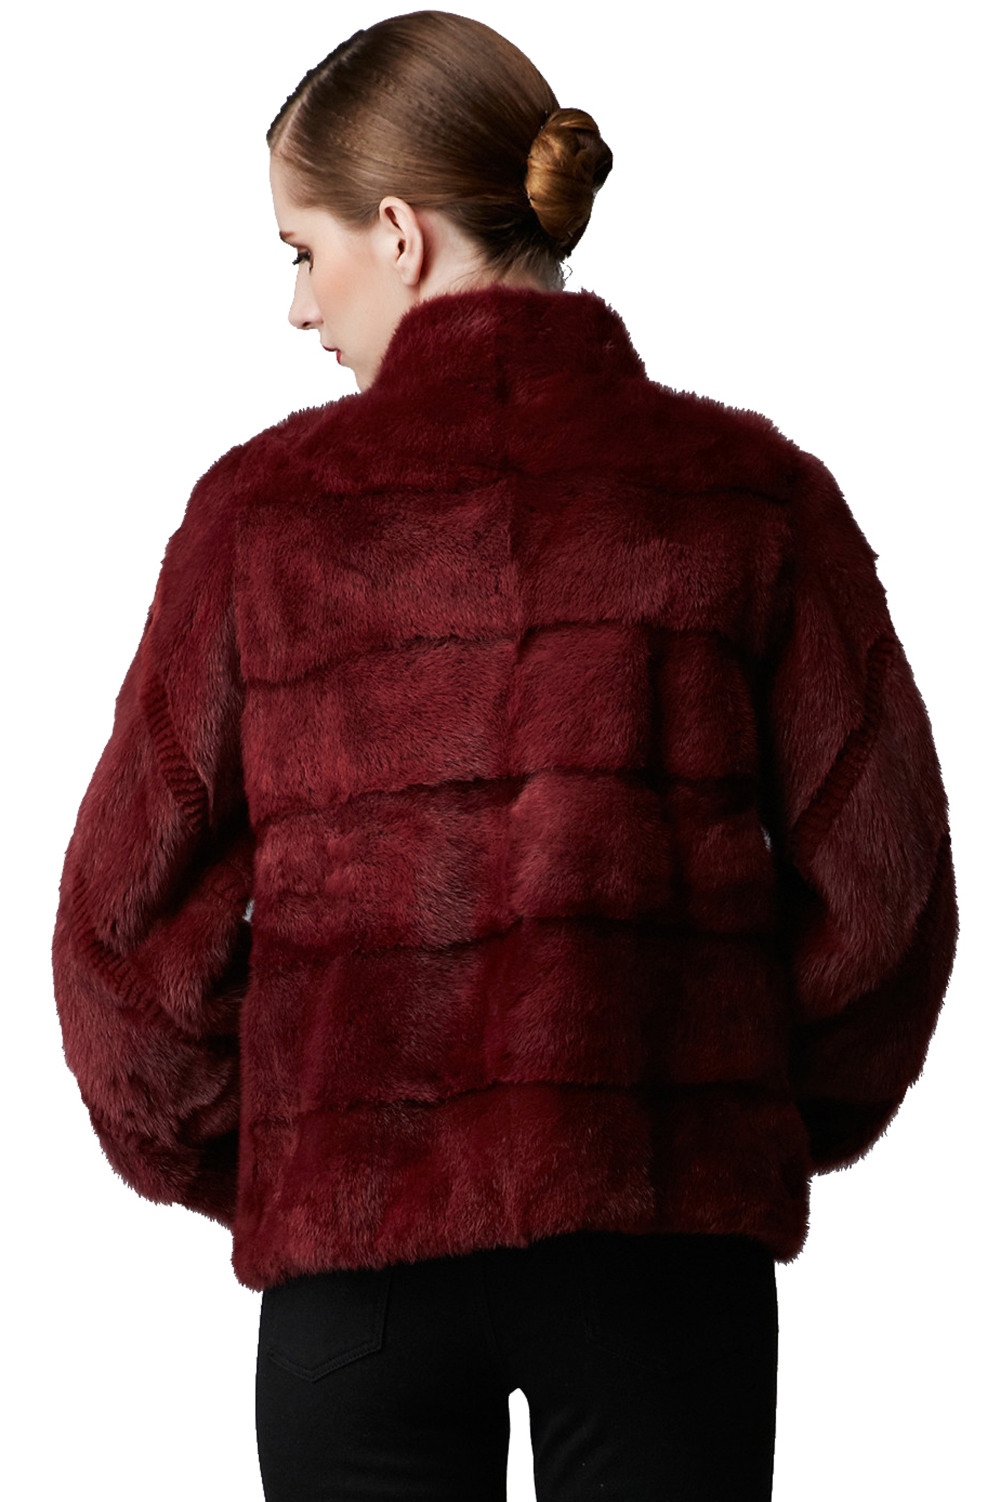 Winter Mink Fur Coat with Puff Sleeves Botton Closed for Warmth